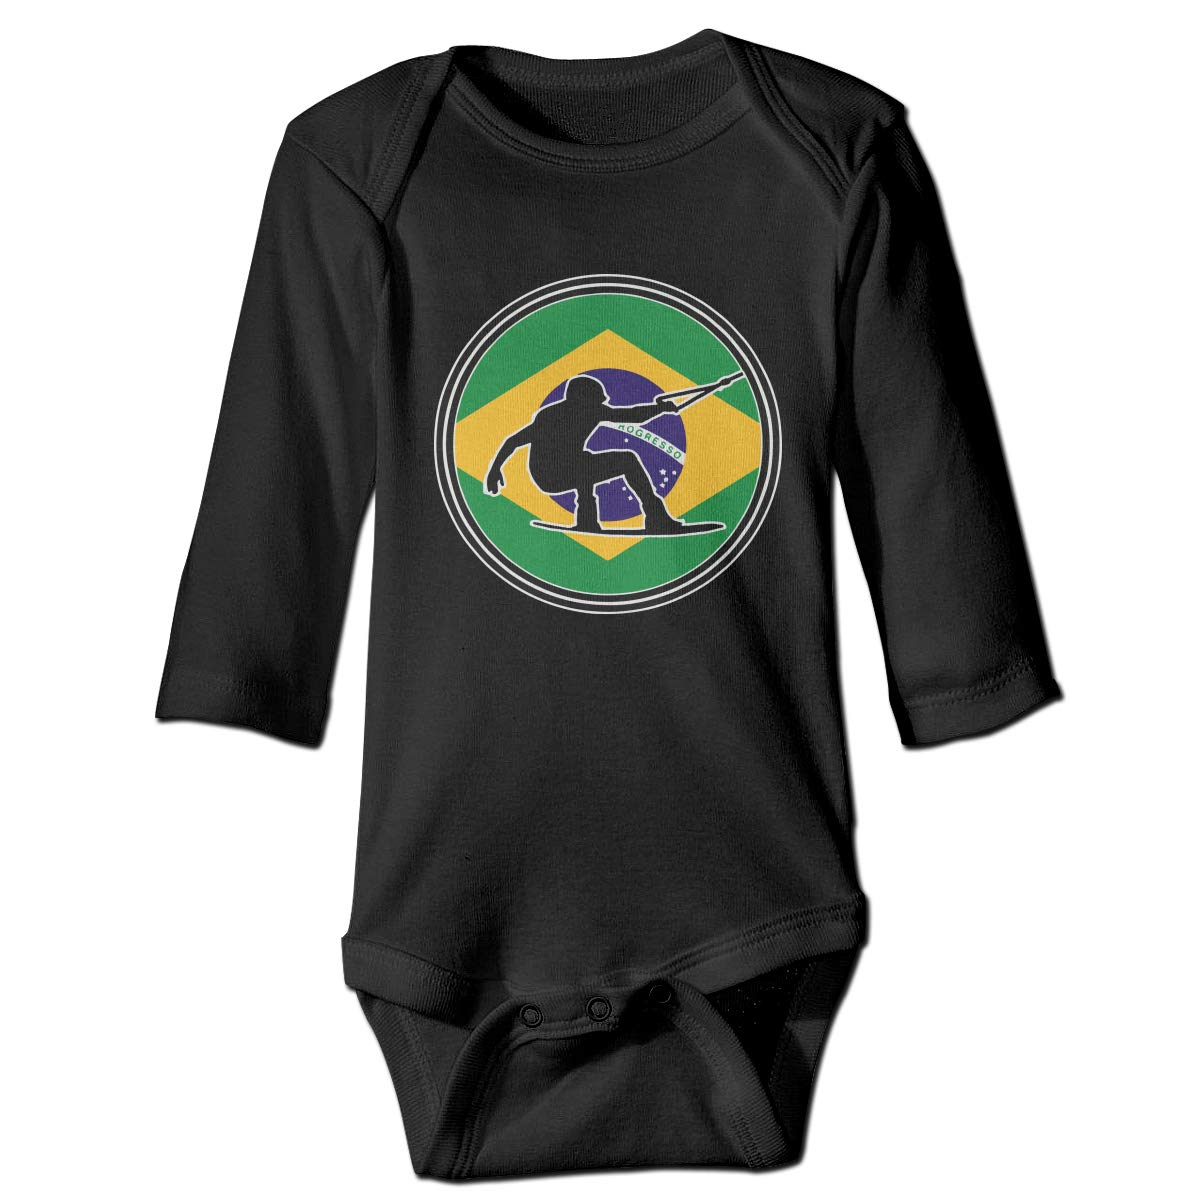 CZDedgQ99 Toddler Wakeboard Brazil for Long Sleeve Climbing Clothes Pajamas Sleepwear Suit 6-24 Months